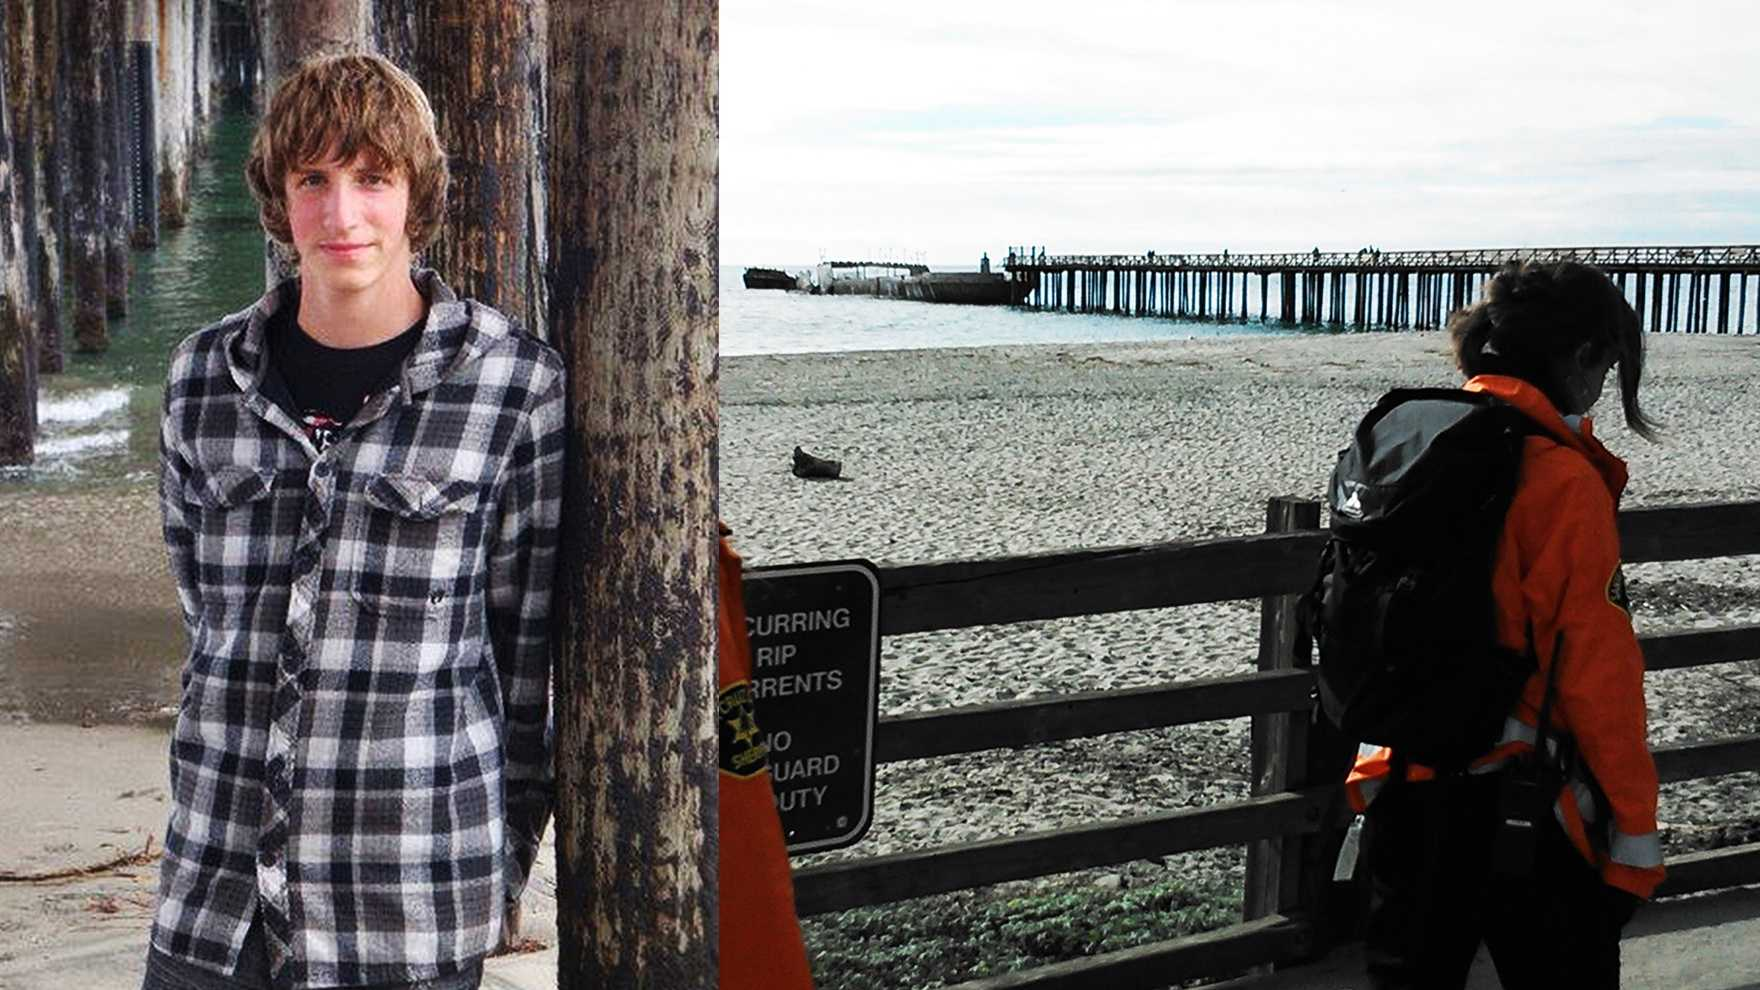 Nathan Phillips, 17, of Aptos, is missing. His bicycle was found at Seacliff Beach and Sheriff's search crews combed the beach for clues Friday.